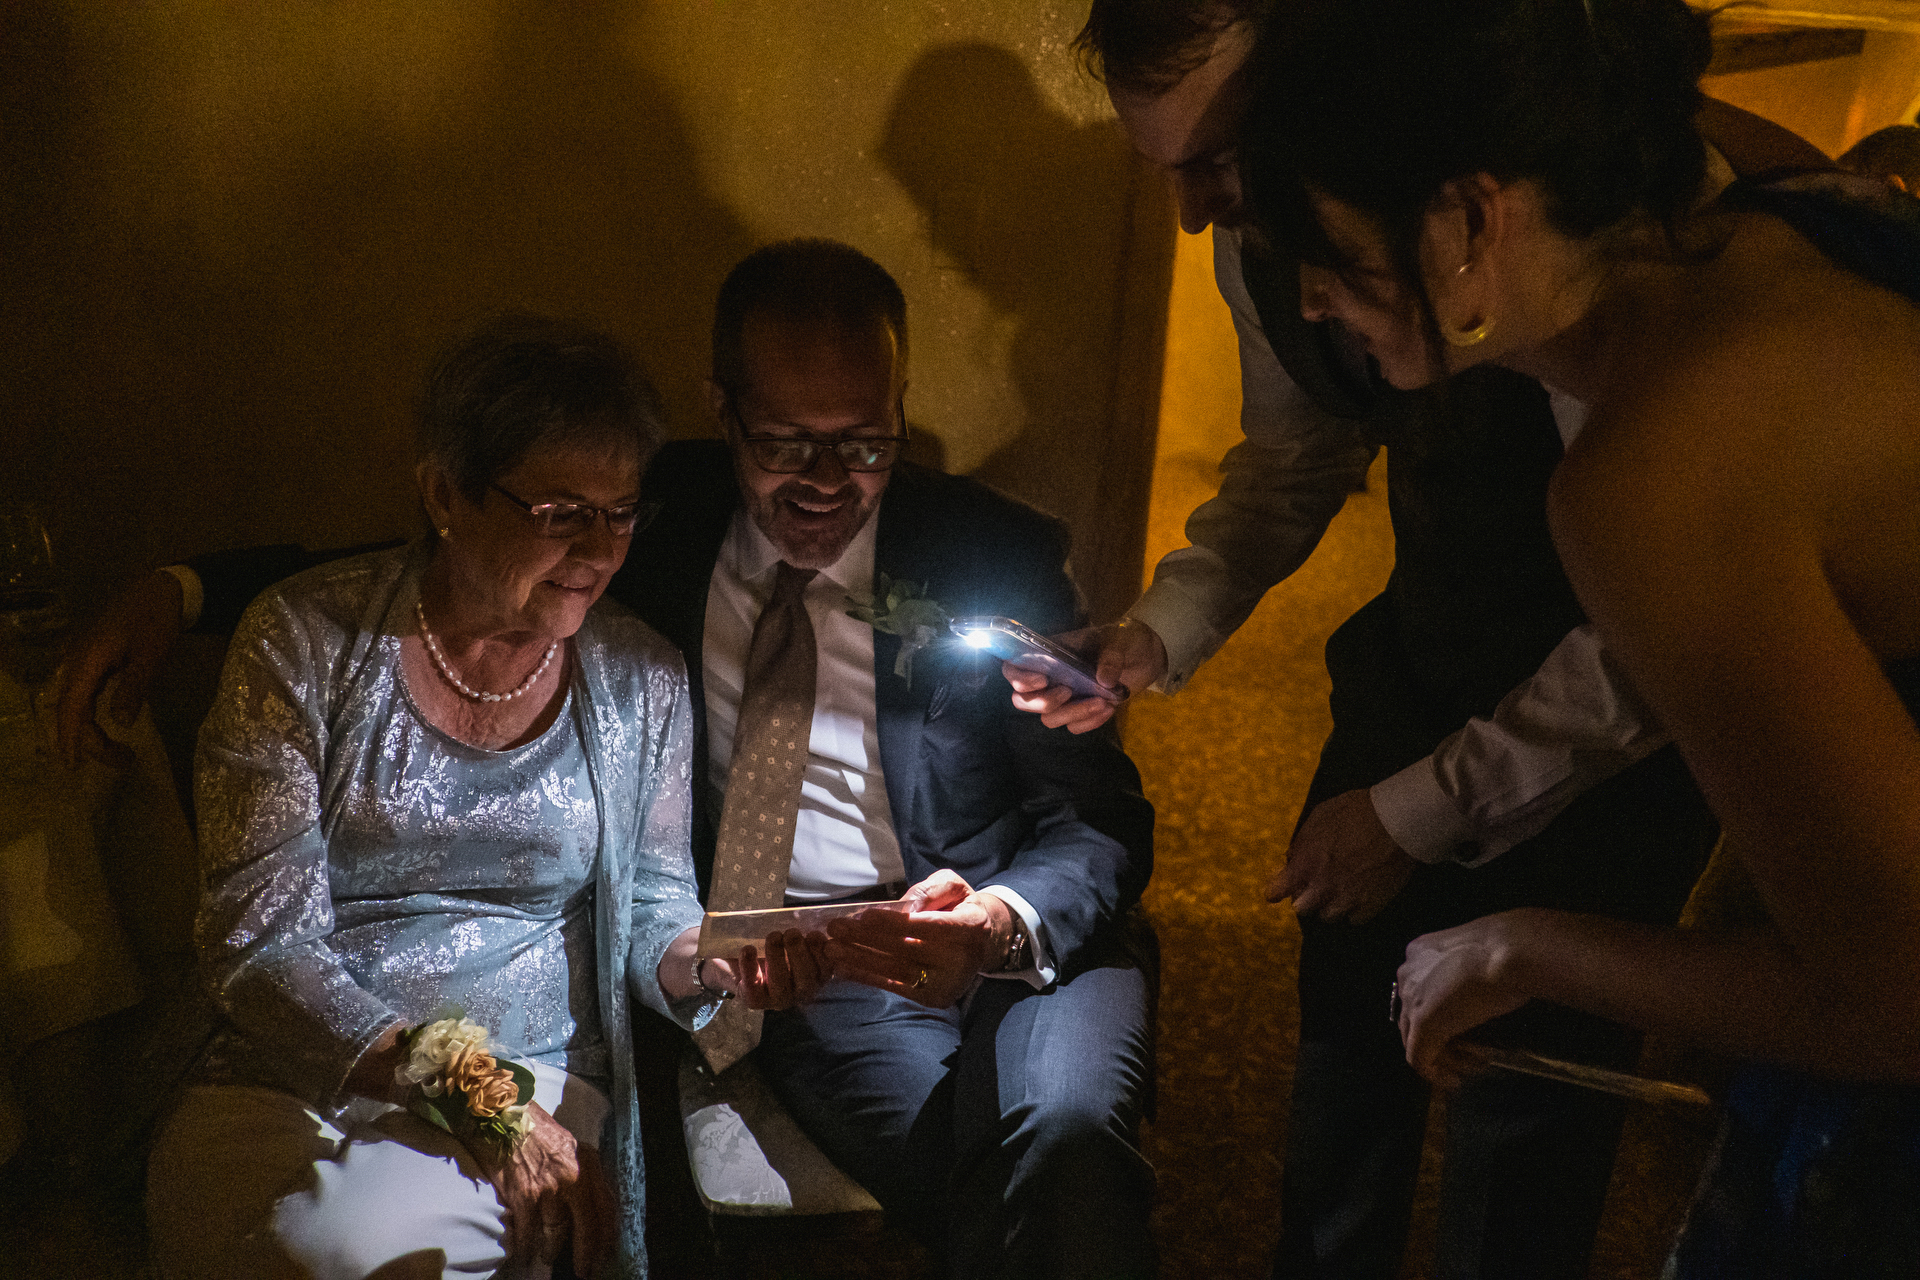 Wedding photography showing the father and grandmother of the bride looking at a photo together in the dark as wedding guests light it with a cellphone light.